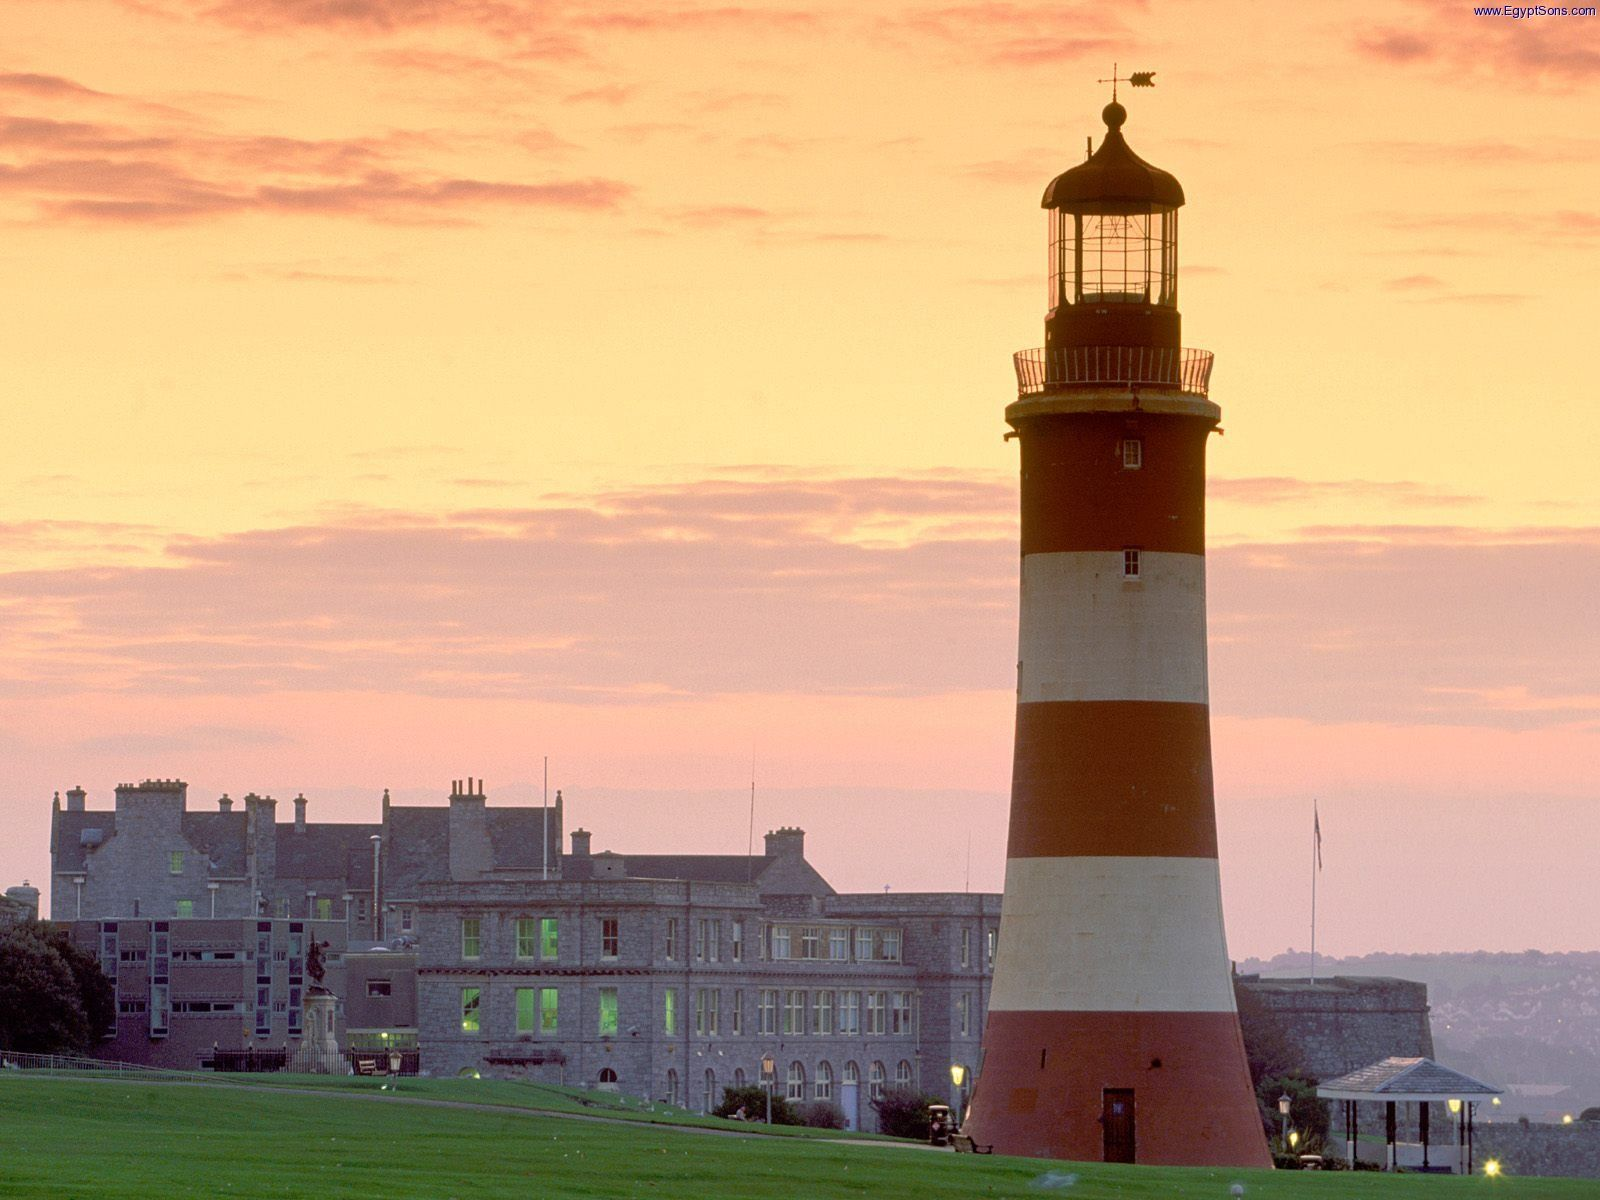 Lighthouse of Plymouth, England